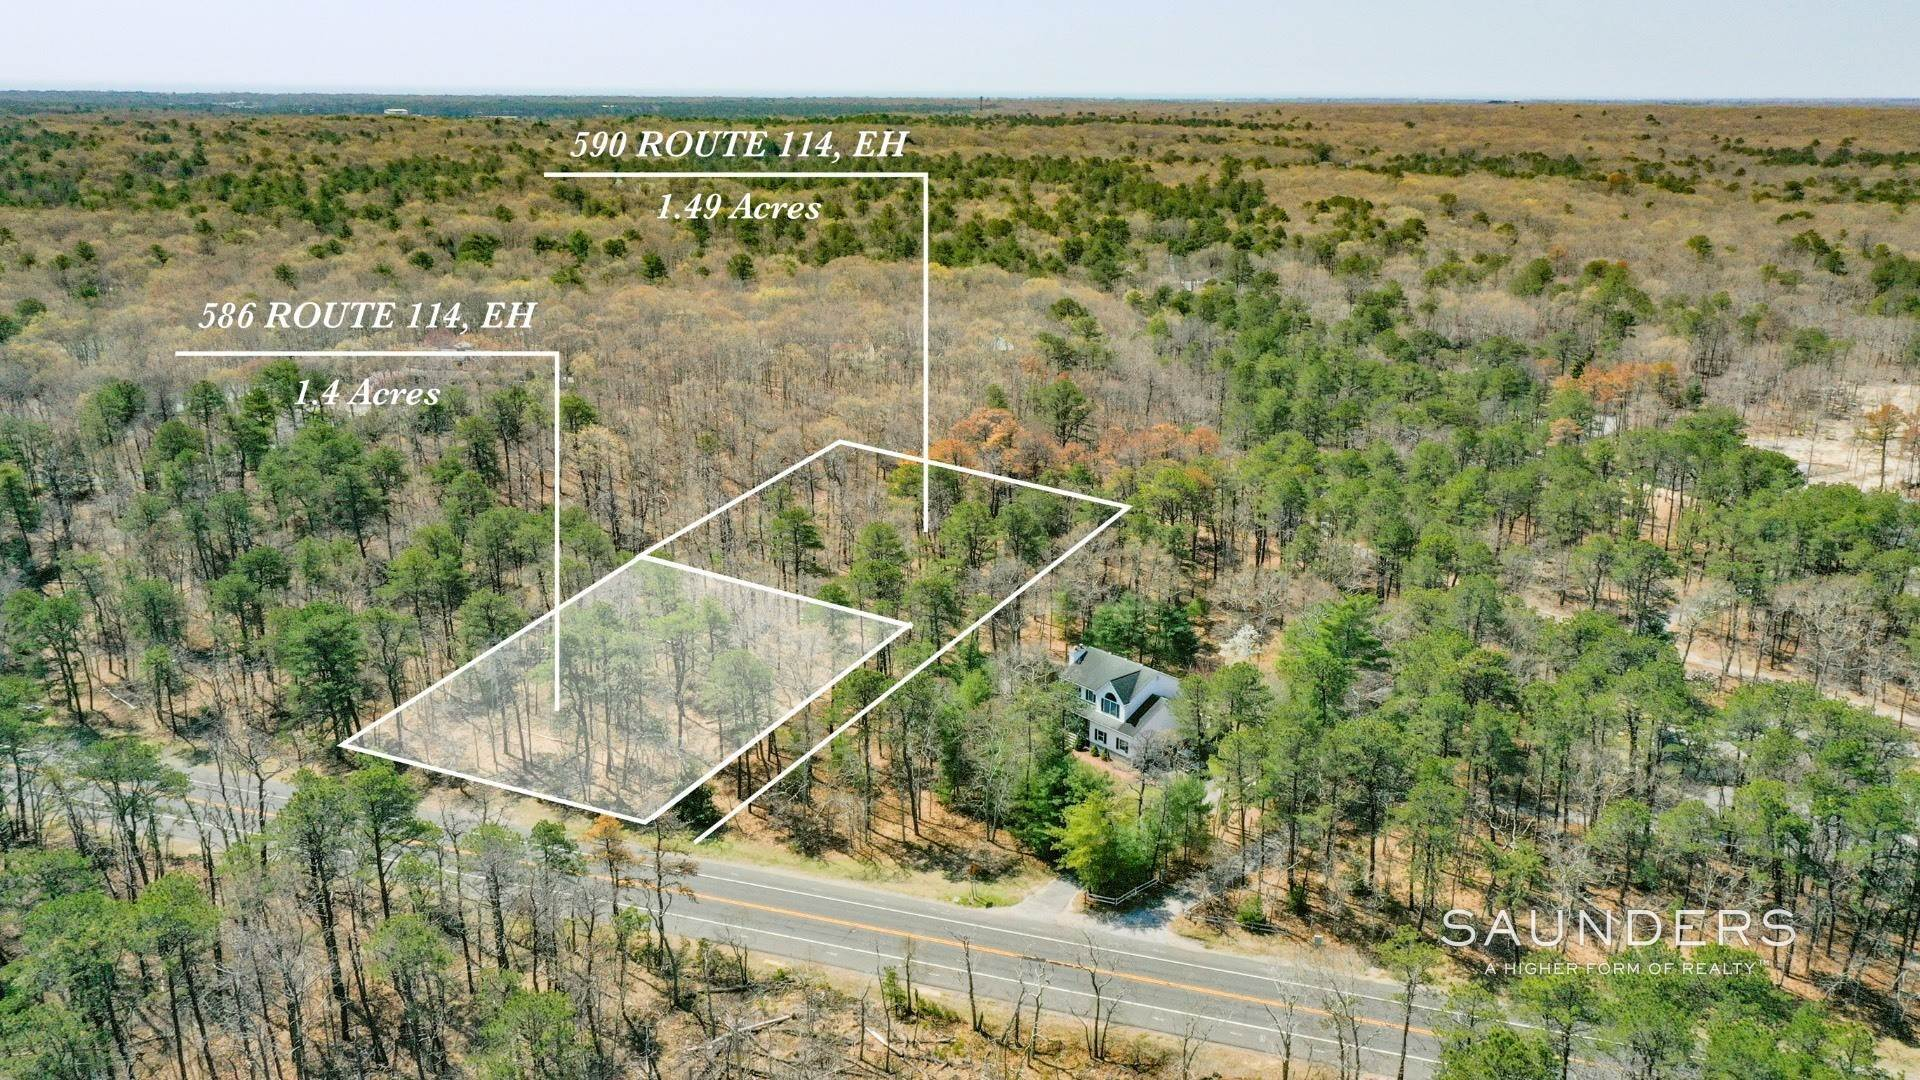 Land for Sale at East Hampton Land Opportunity 590 Route 114, Wainscott, East Hampton Town, NY 11937